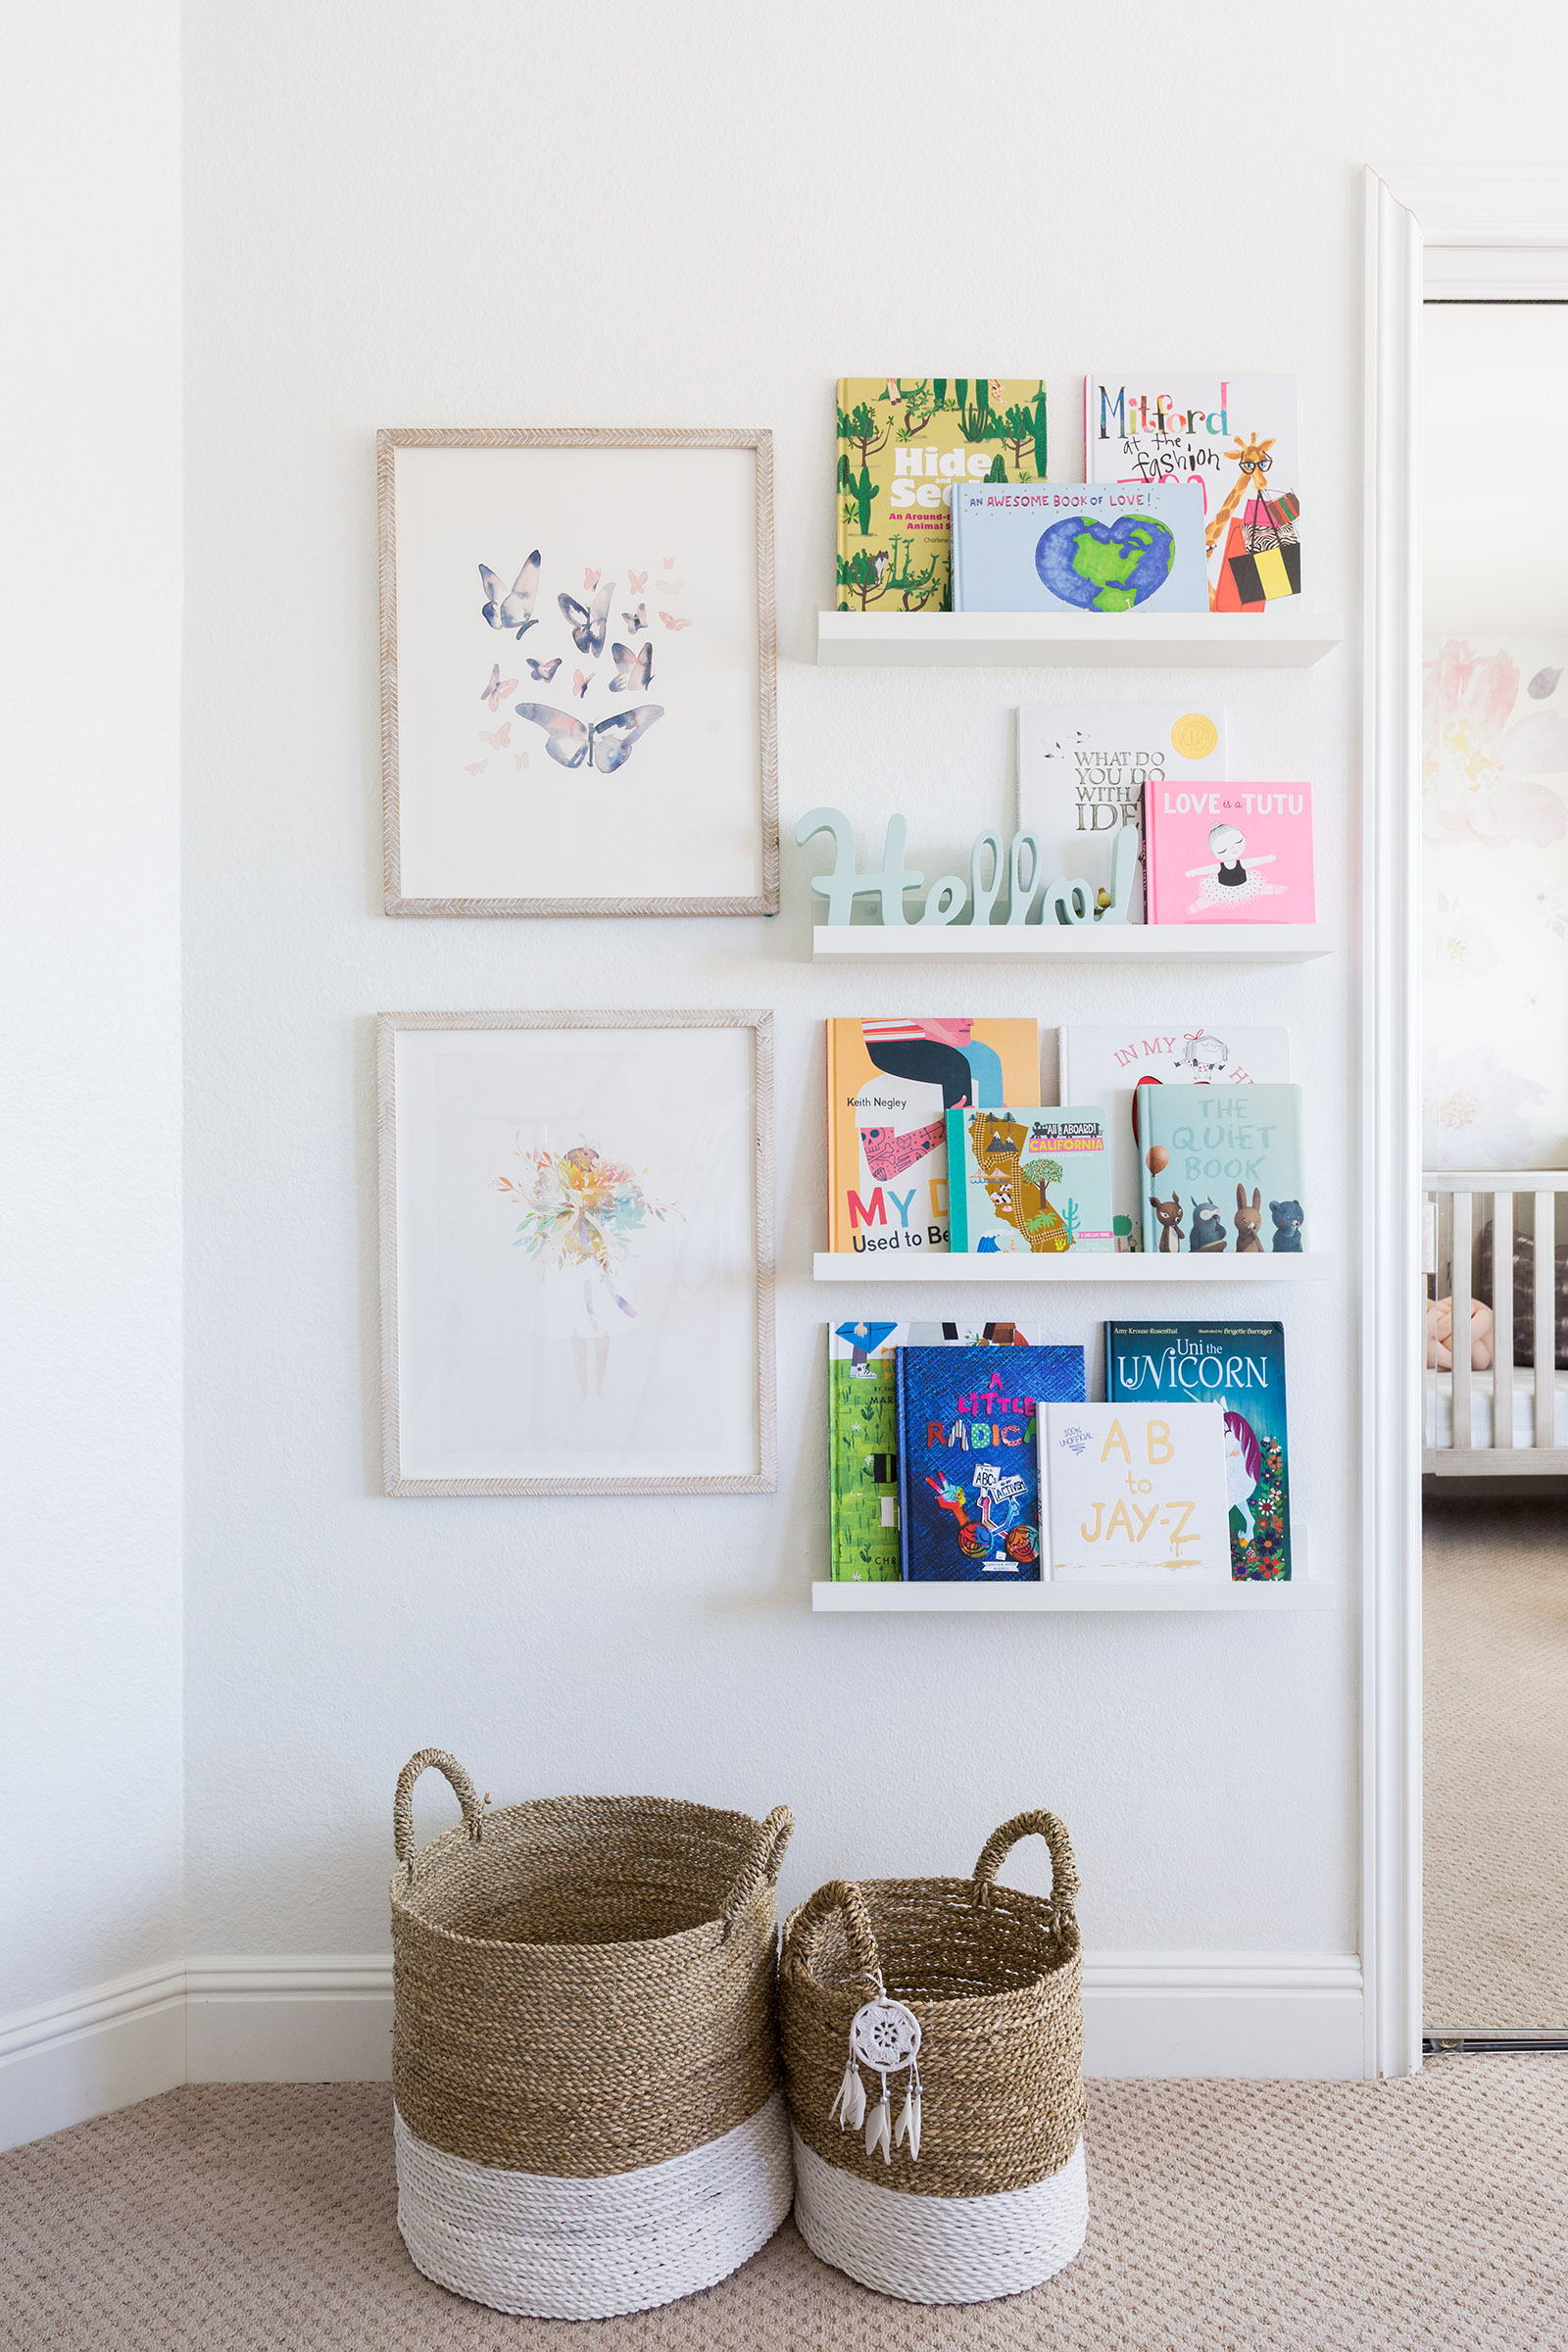 Where to save and where to splurge in kids spaces. Brentwood Project designed by Lindsey Brooke Design, photographed by Amy Bartlam